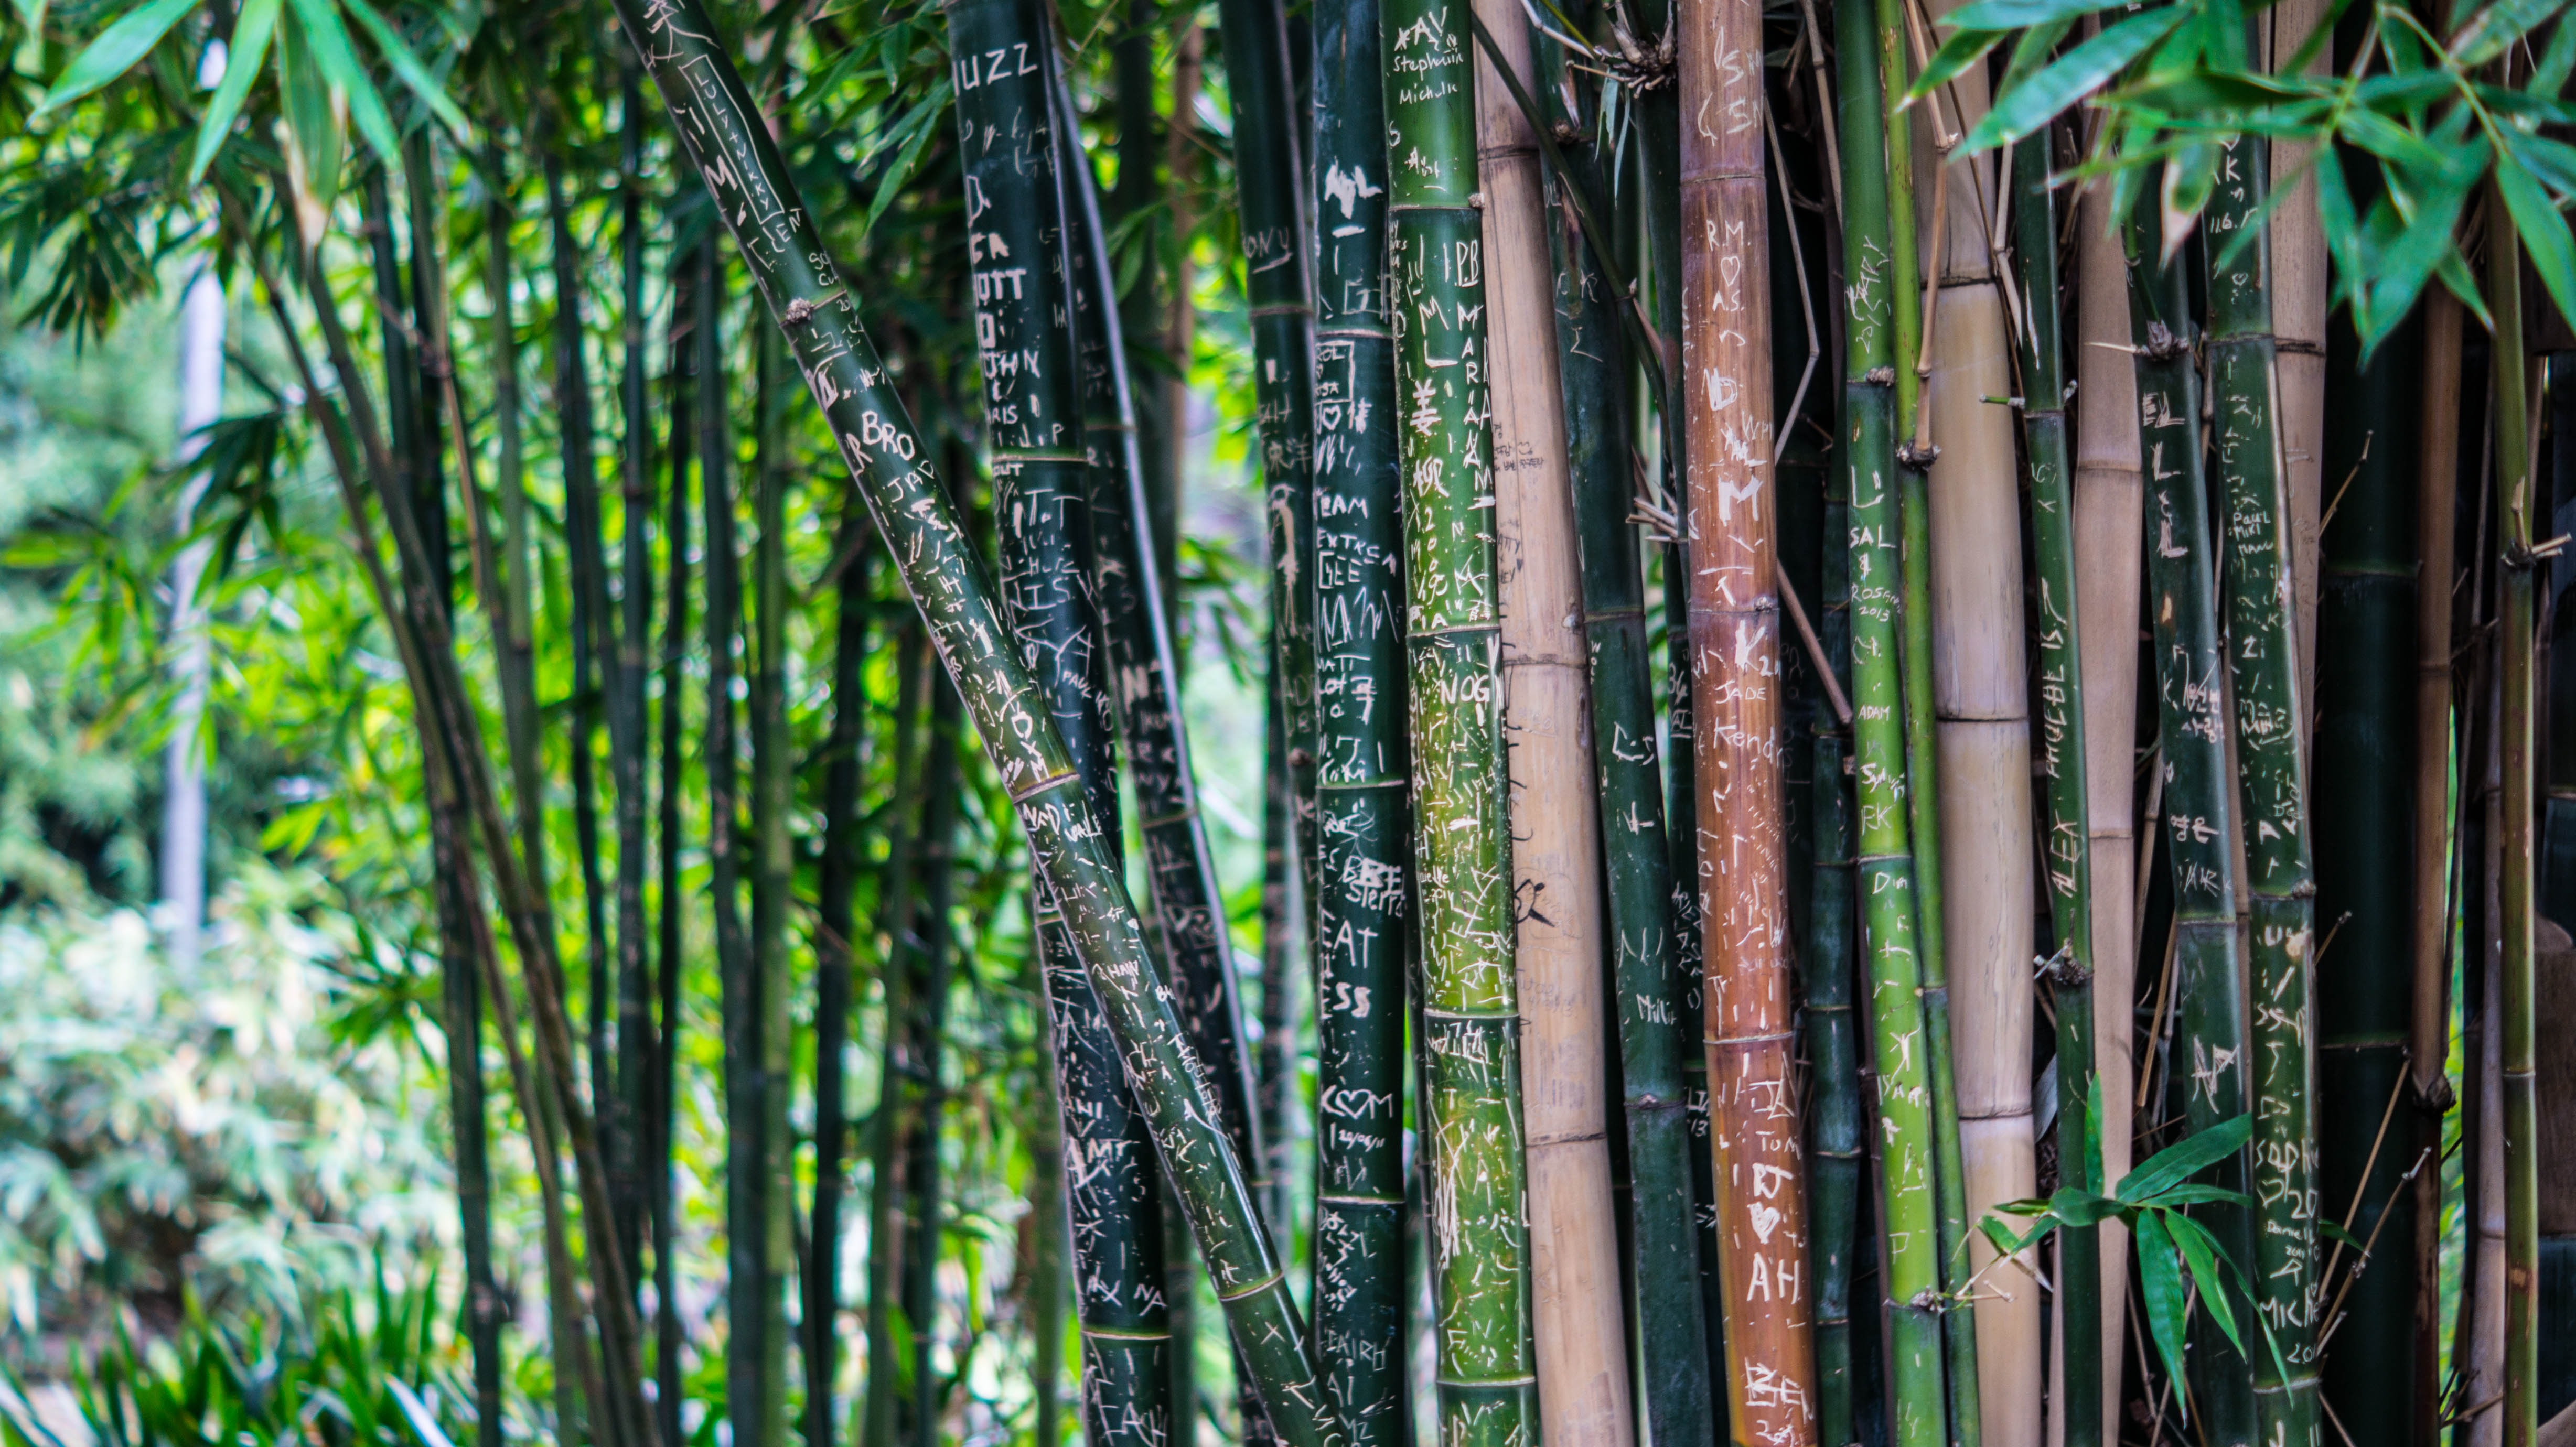 Iphone 8 X Wallpaper Green Leaf Bamboo Tree At Daytime 183 Free Stock Photo